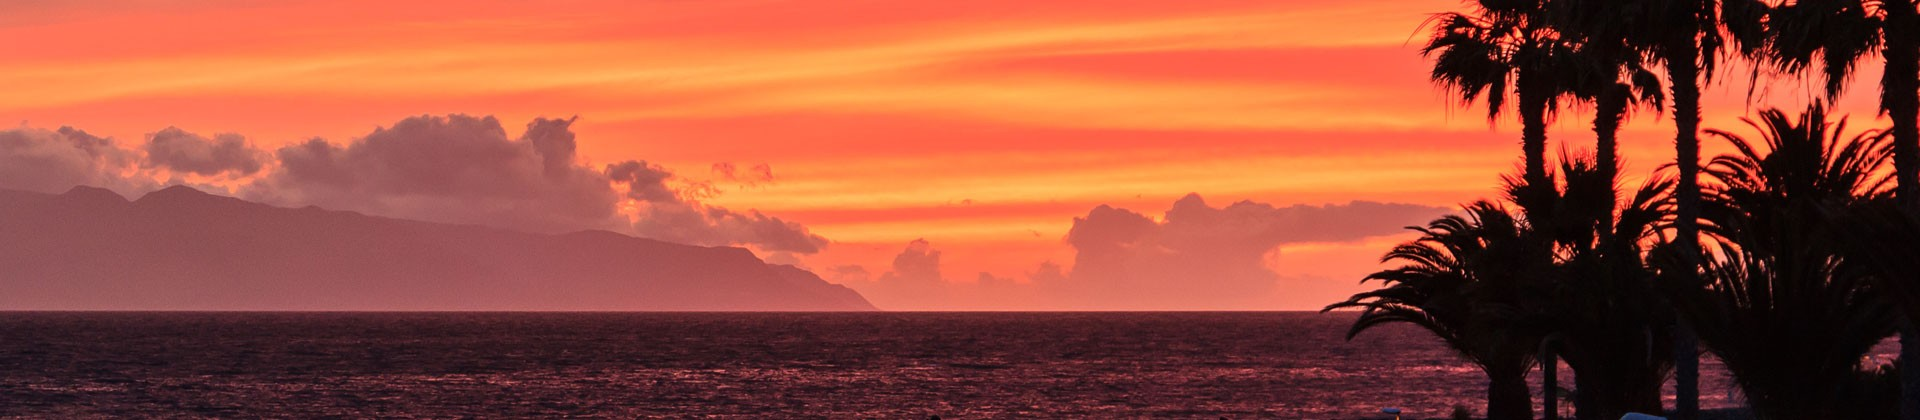 https://www.goodmorningtenerife.com/wp-content/uploads/2014/08/01_slide_sunset_GM_Tenerife-1920x420.jpg